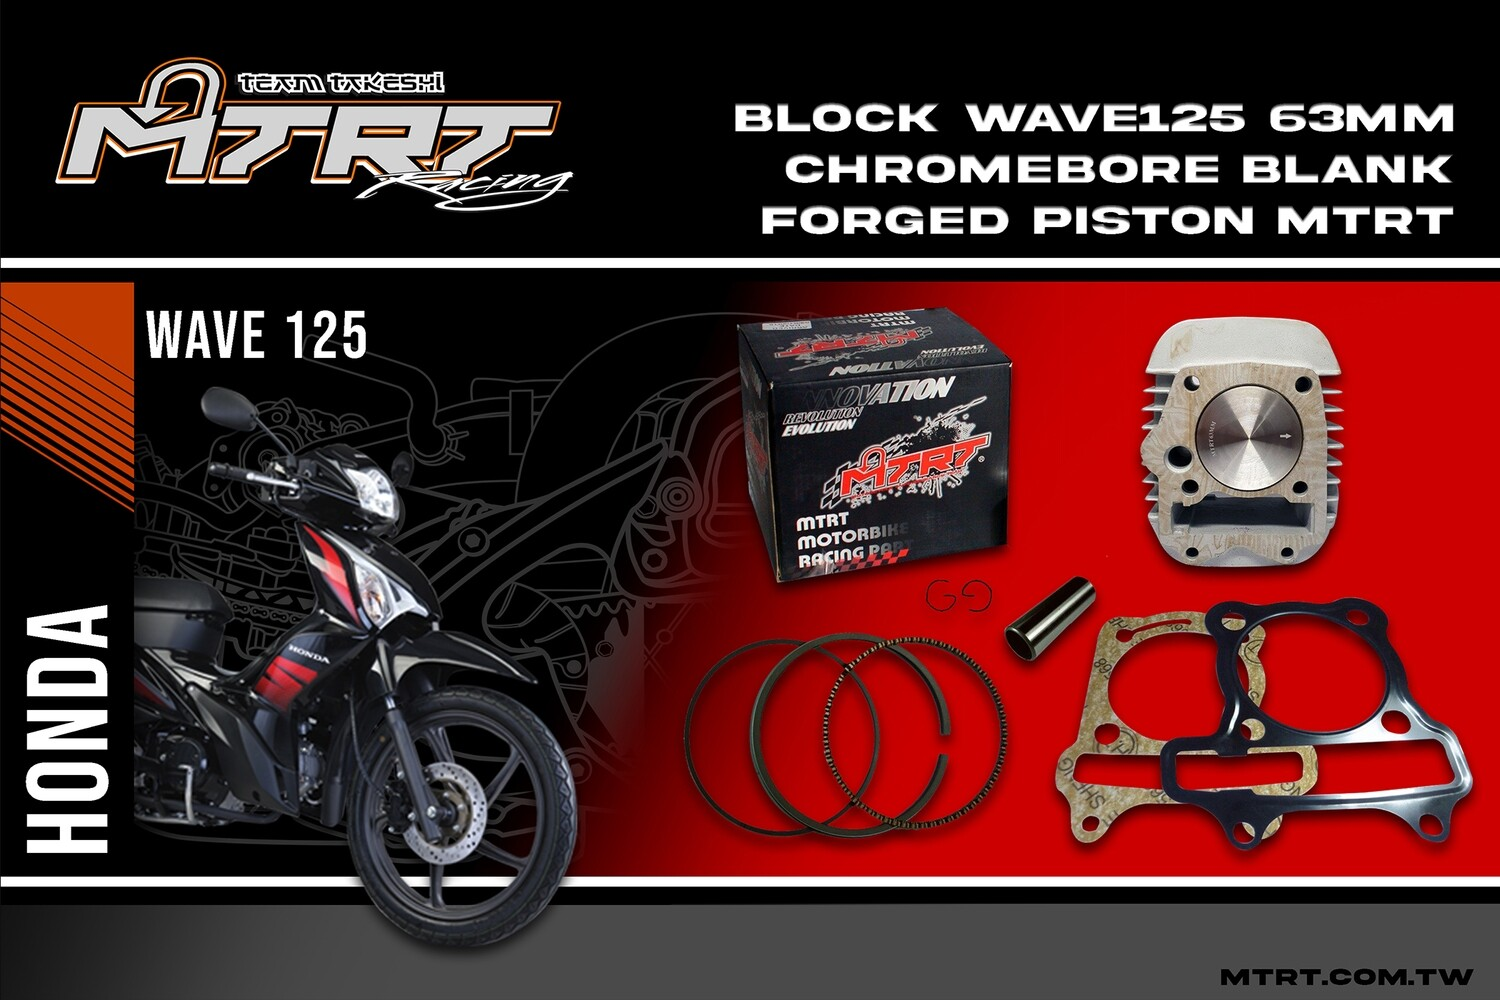 63MM WAVE125 Chromebore Block with Blank Forged Piston MTRT